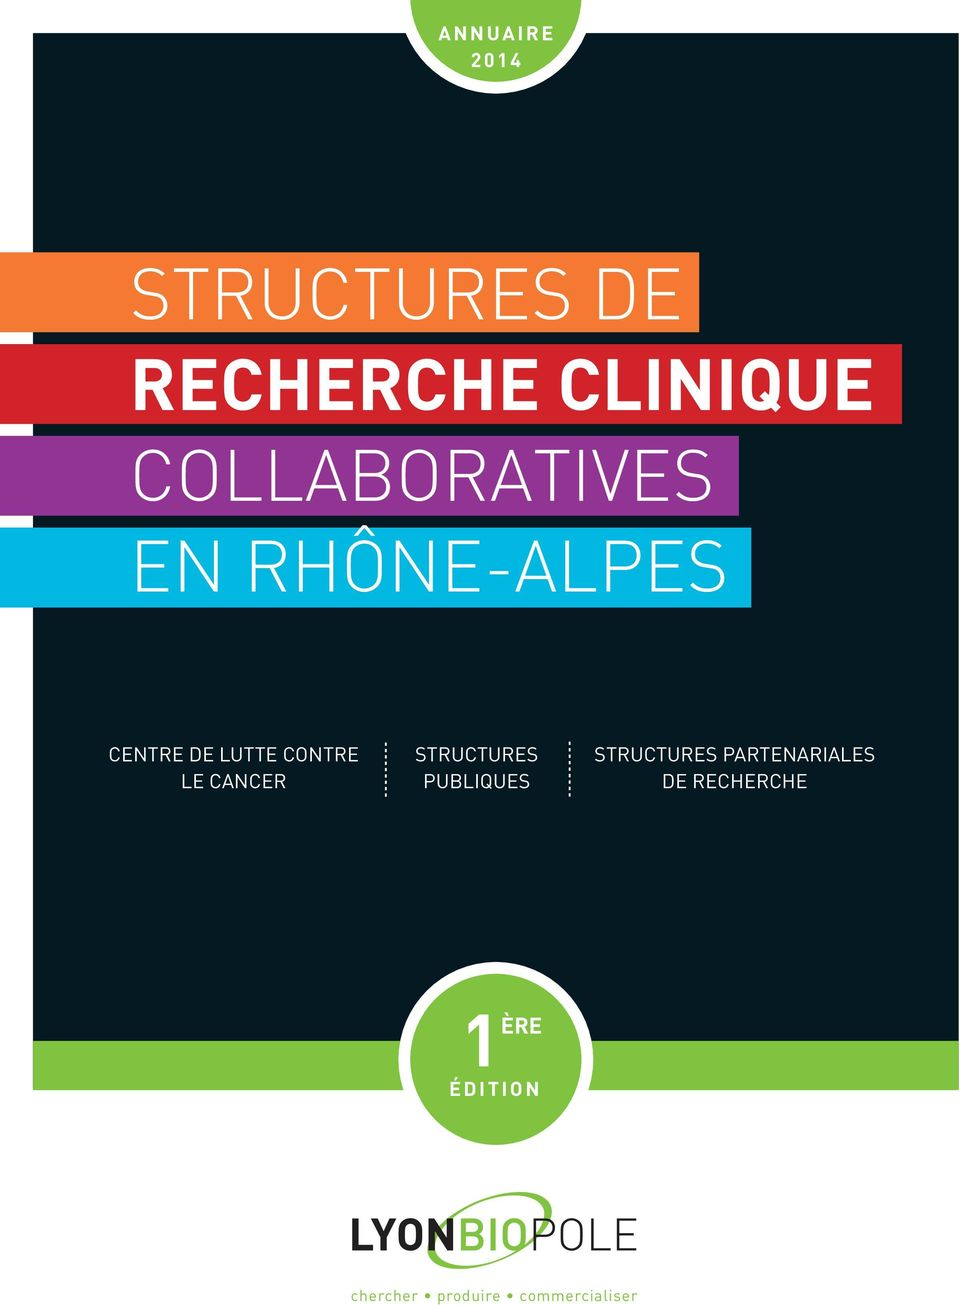 LE CANCER STRUCTURES PUBLIQUES STRUCTURES